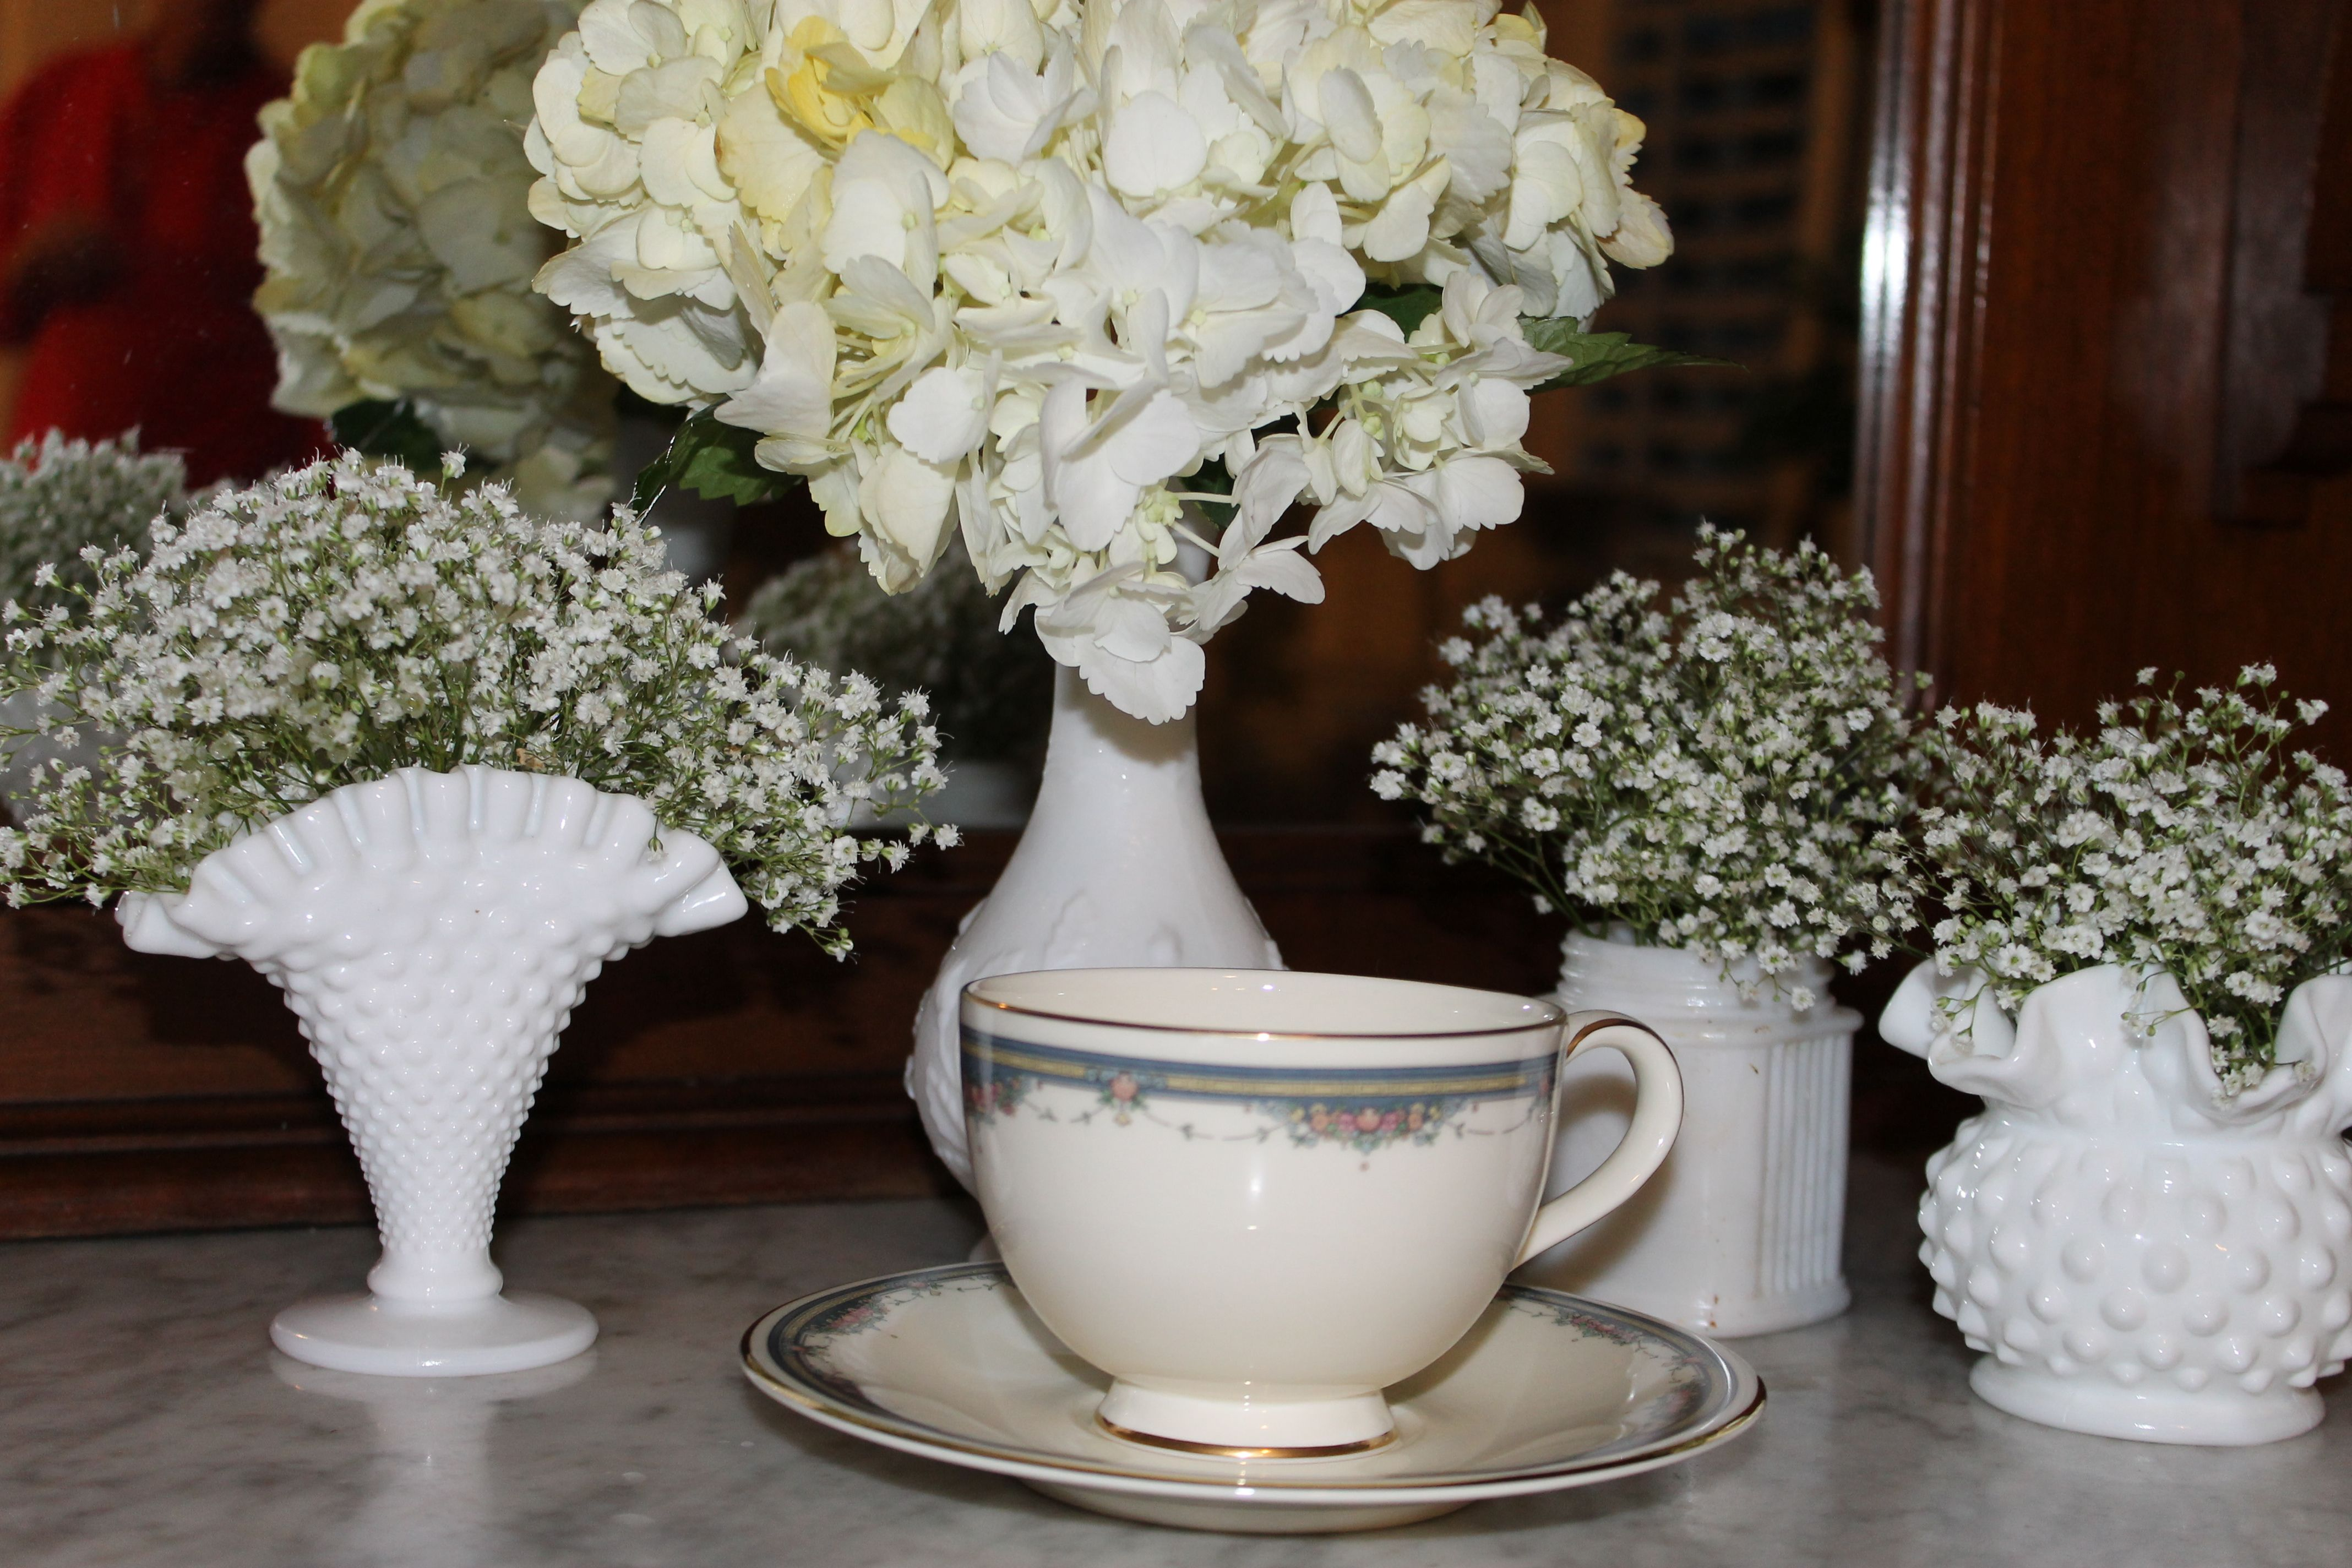 Pretty Milk Glass And China Teacup And Saucer For Vintage